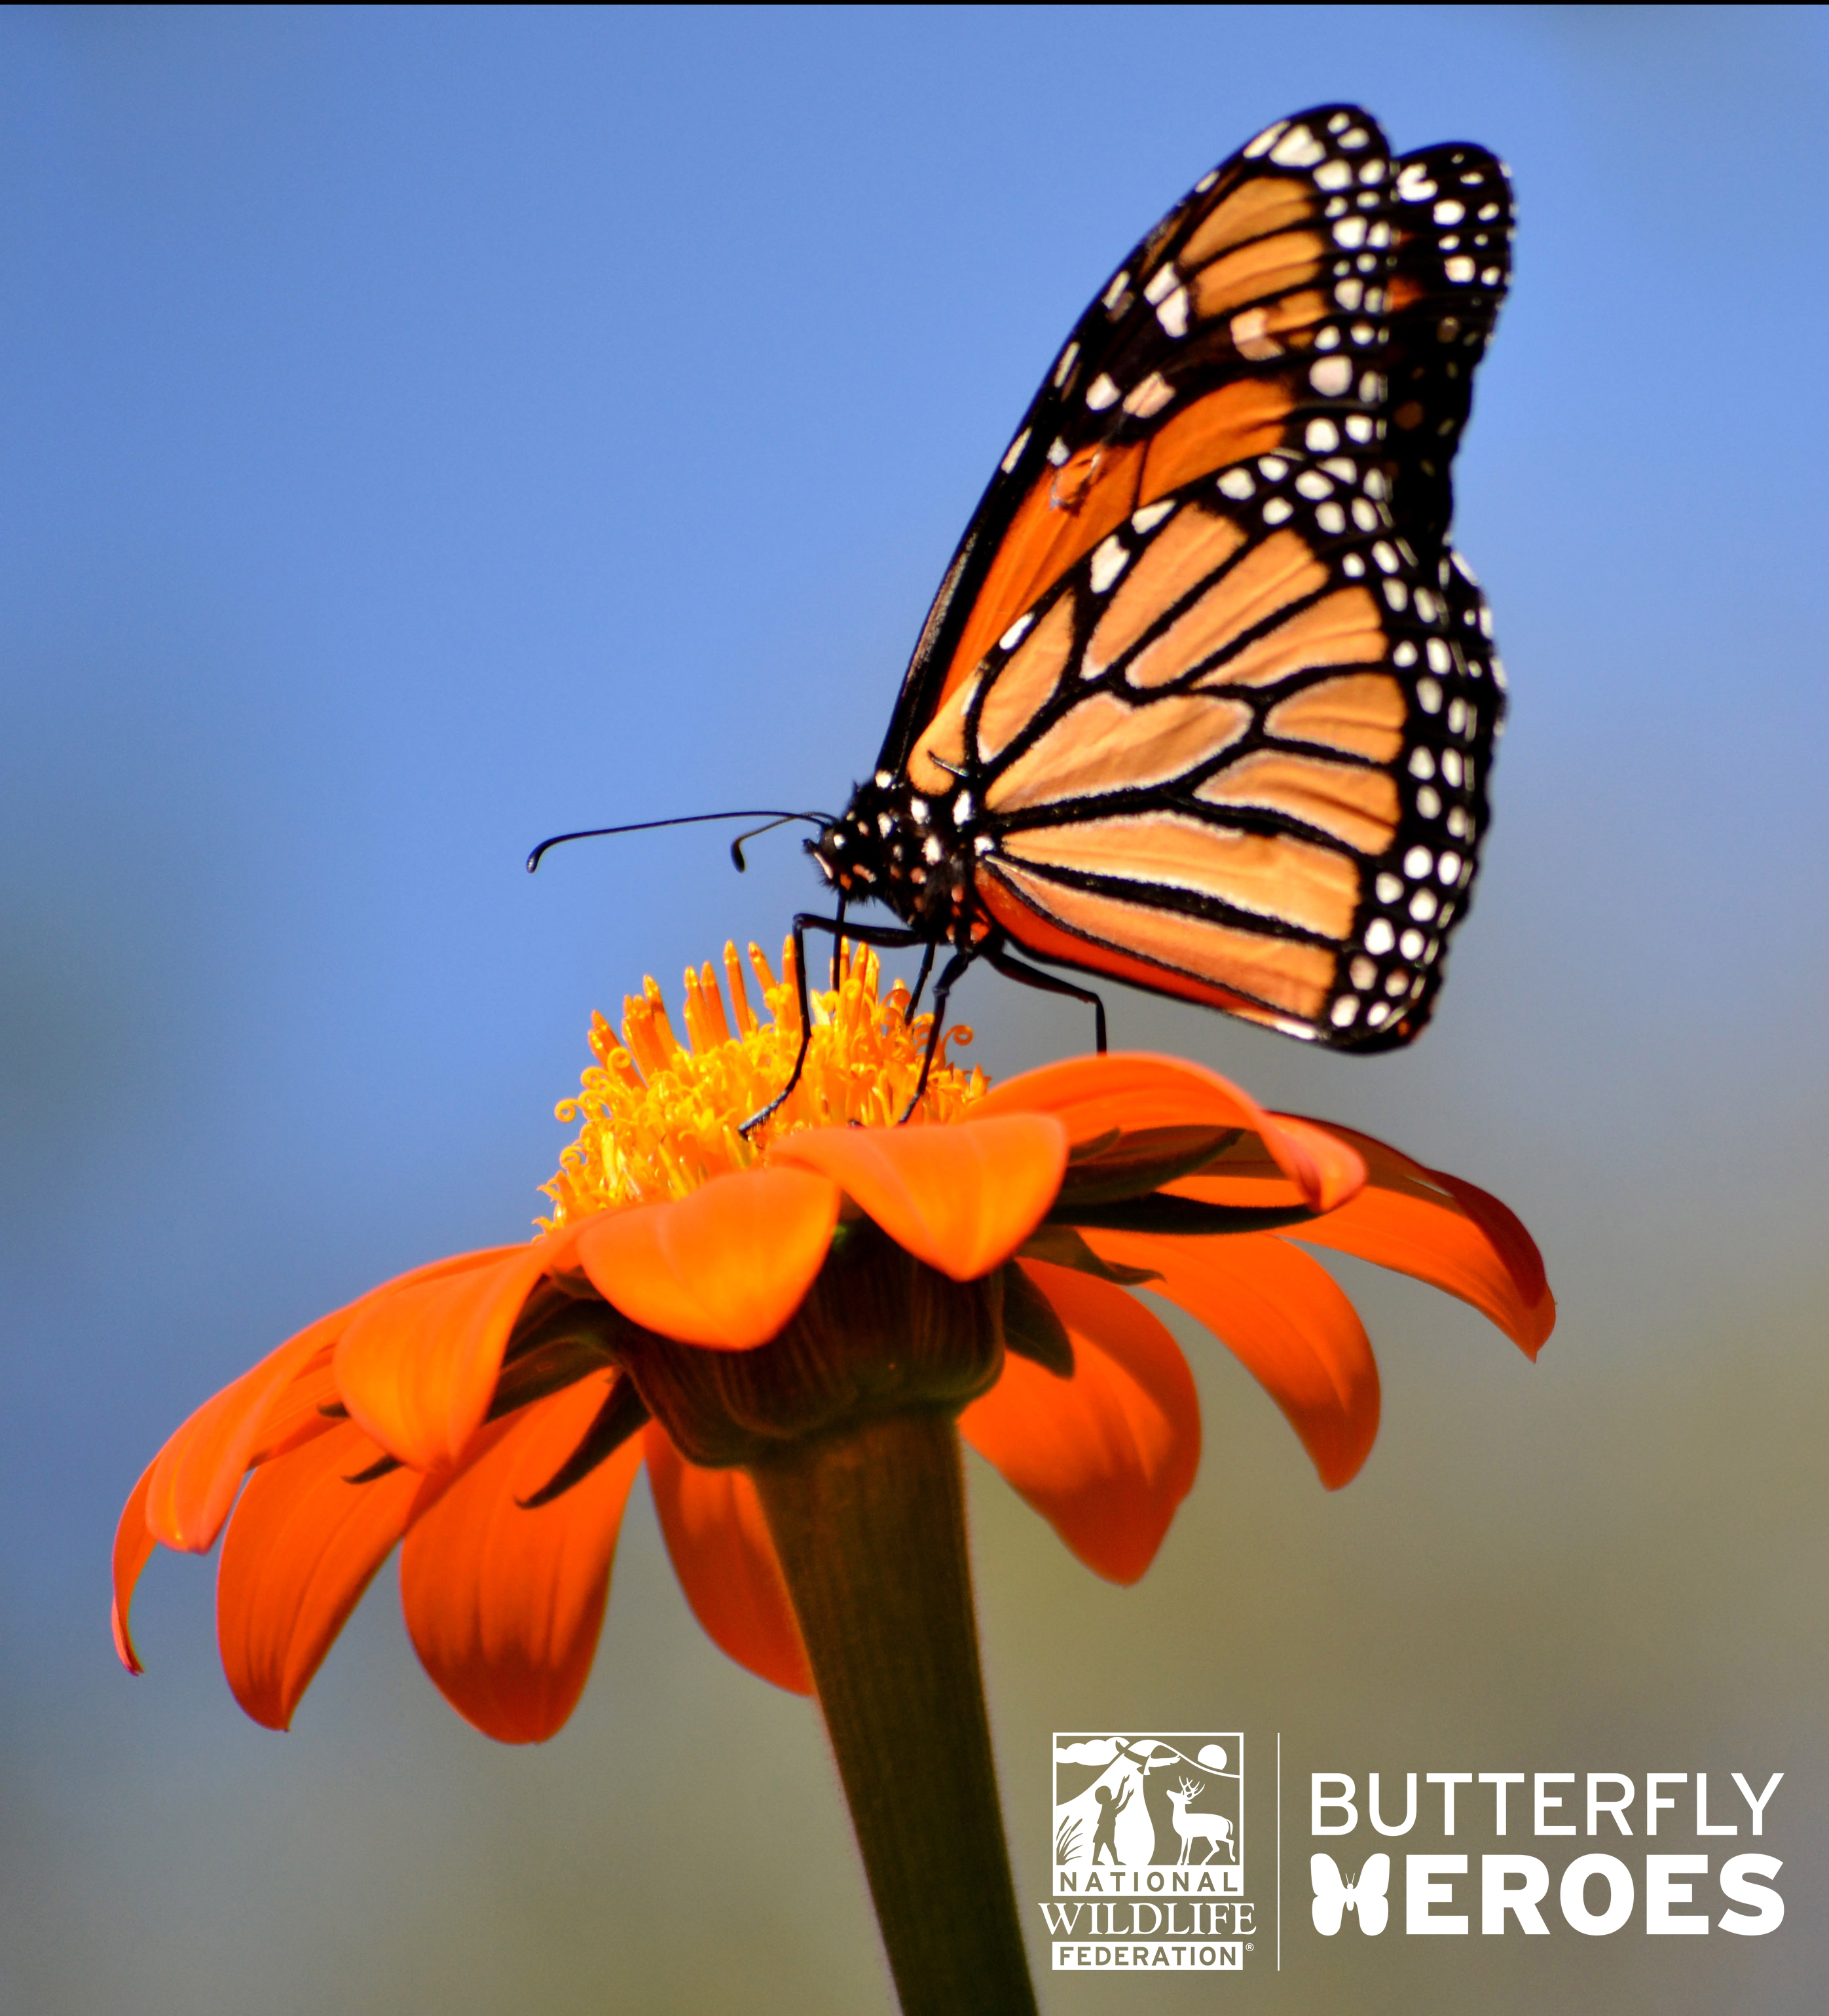 Submit a Photo and Help Save the Monarch Butterfly